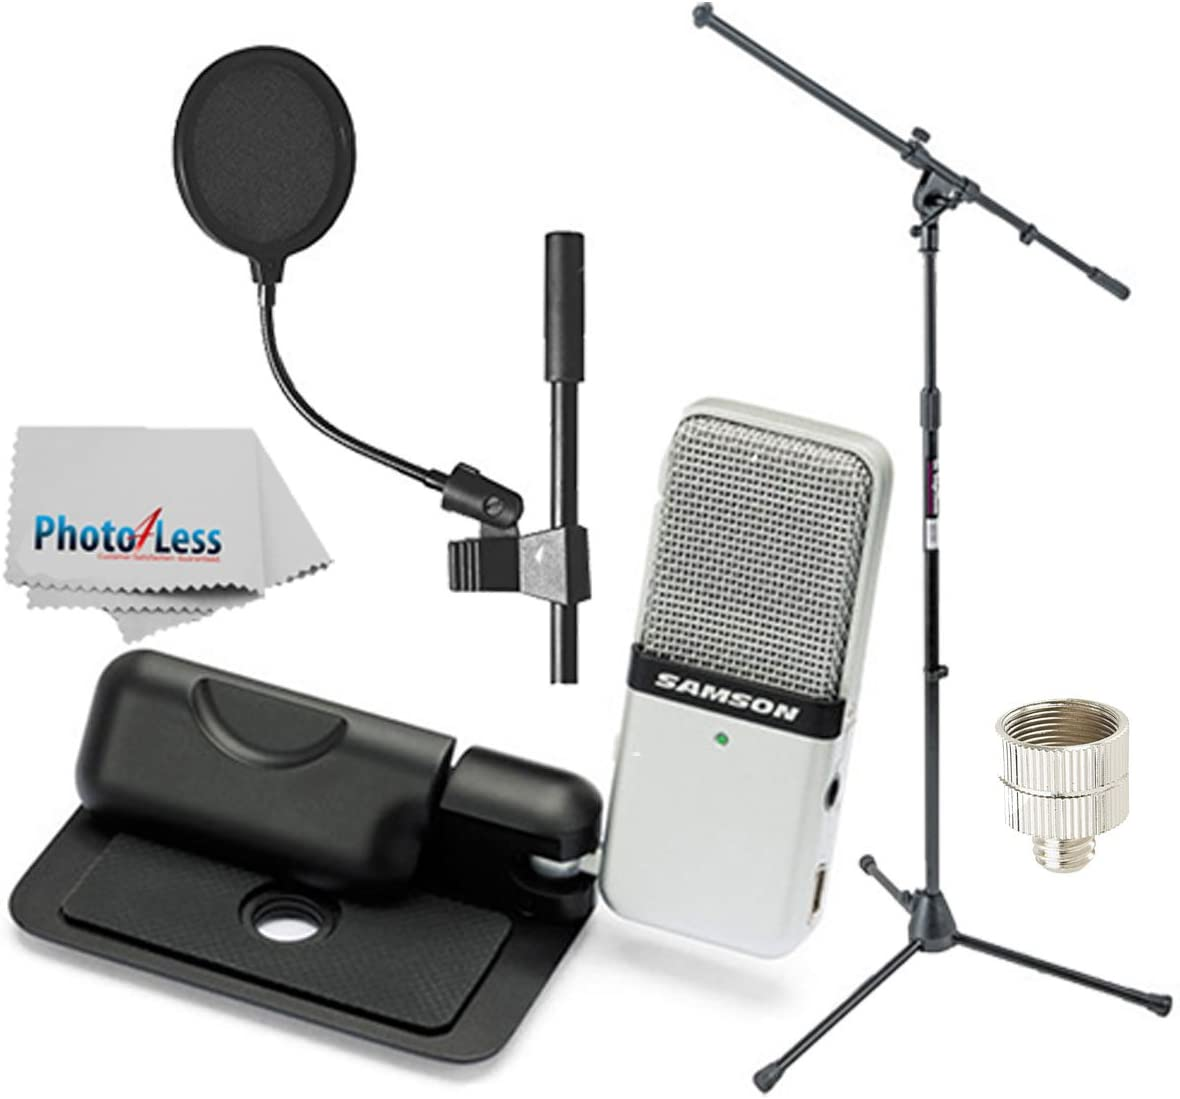 Samson Go Mic Portable USB Condenser Microphone Bundle with On-Stage MS7701B Euro Boom Microphone Stand, Pop Filter, Mic Screw Adapter & Cleaning Cloth Cleaning Cloth